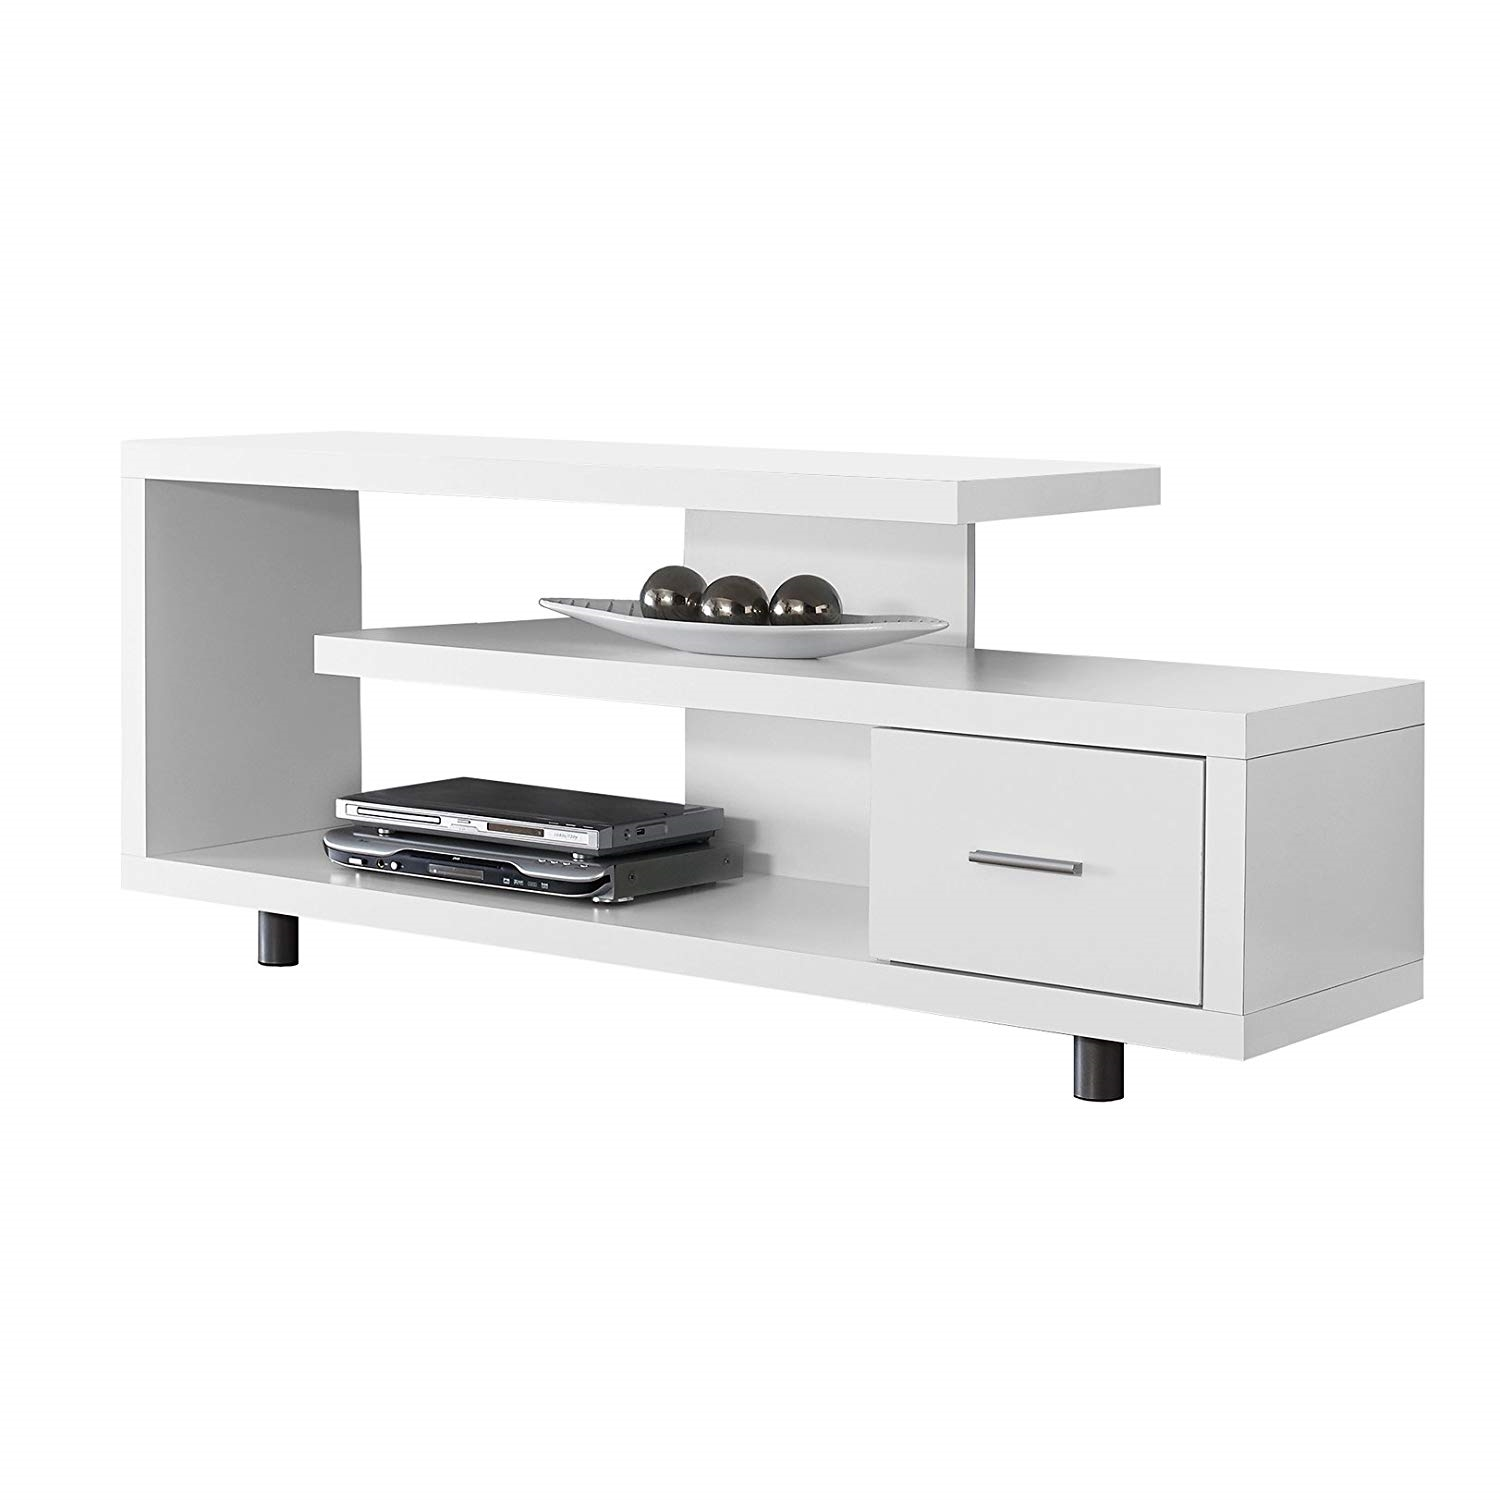 Modern Tv White Modern Tv Stand Fits Up To 60 Inch Flat Screen Tv